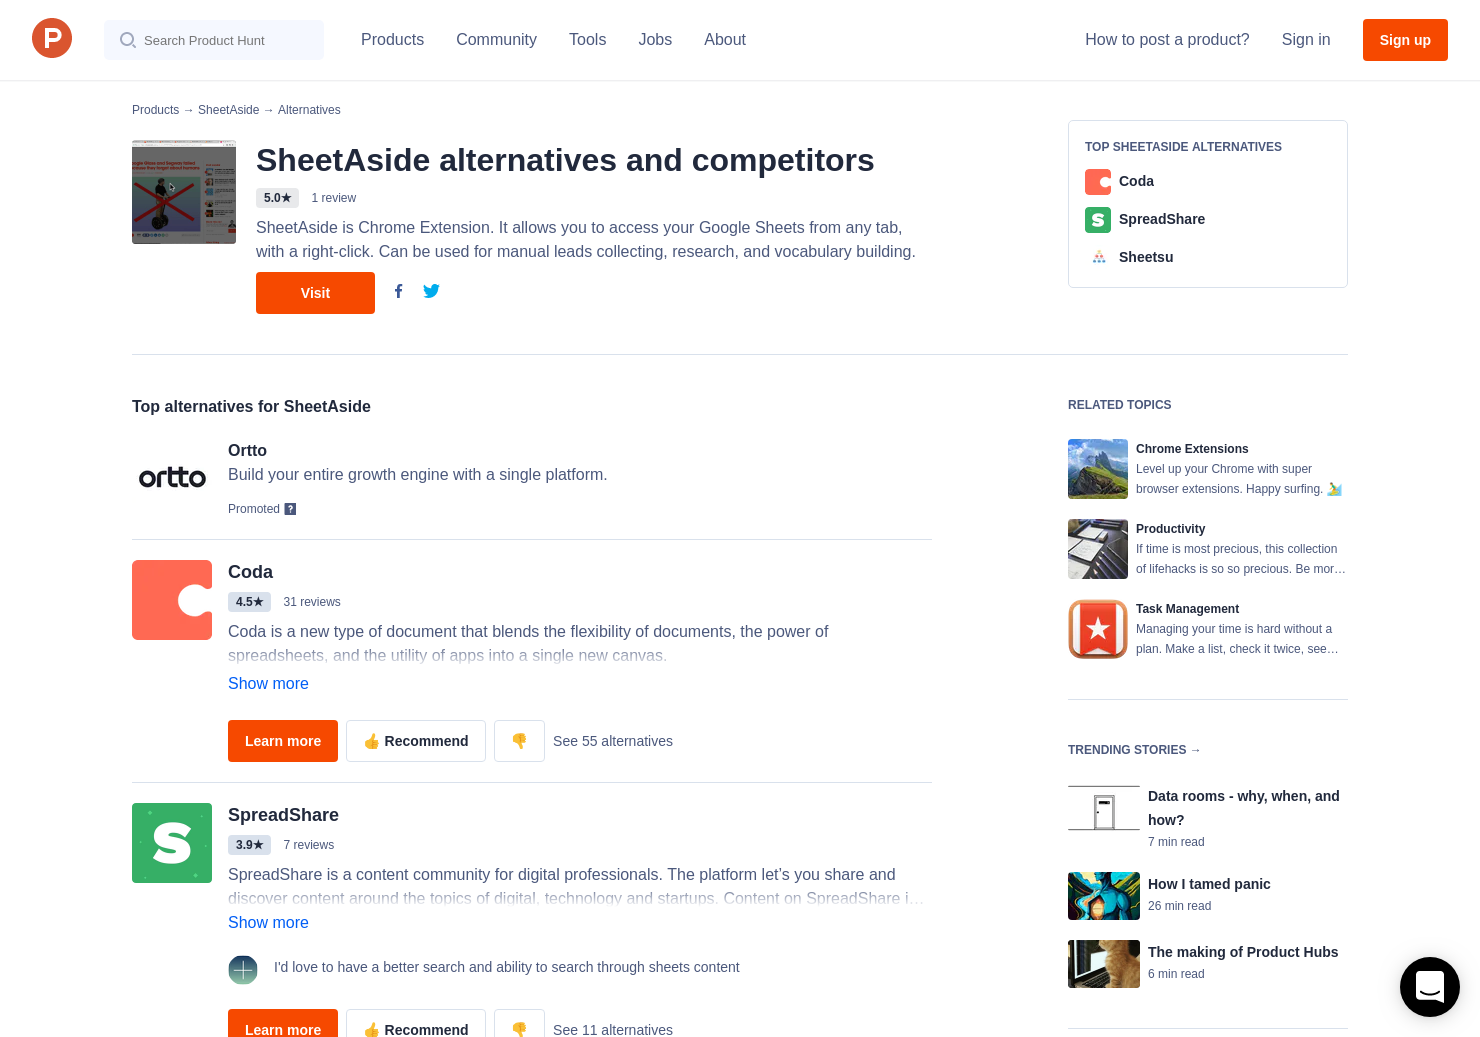 10 Alternatives To Sheetaside For Chrome Extensions Product Hunt